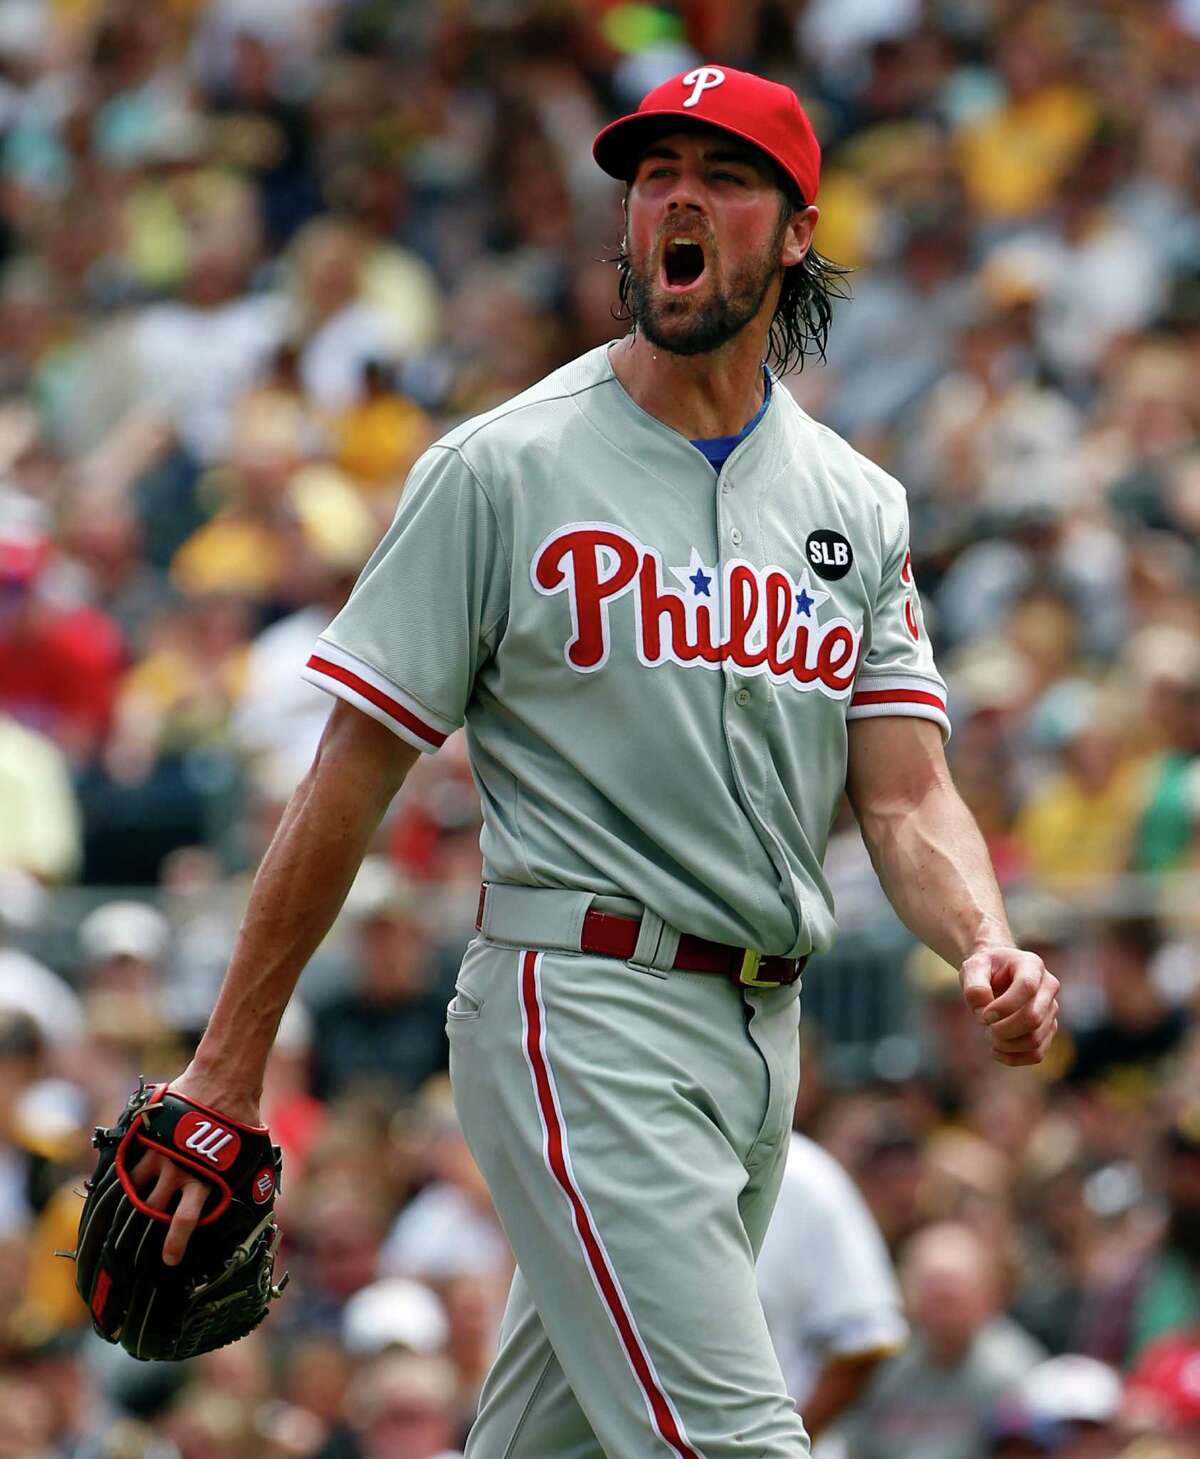 The Astros are not on Cole Hamels' list of nine teams that he could be traded to without requiring him to waive his partial no-trade clause, but the Phillies lefthander said he is open-minded about pitching for any club.